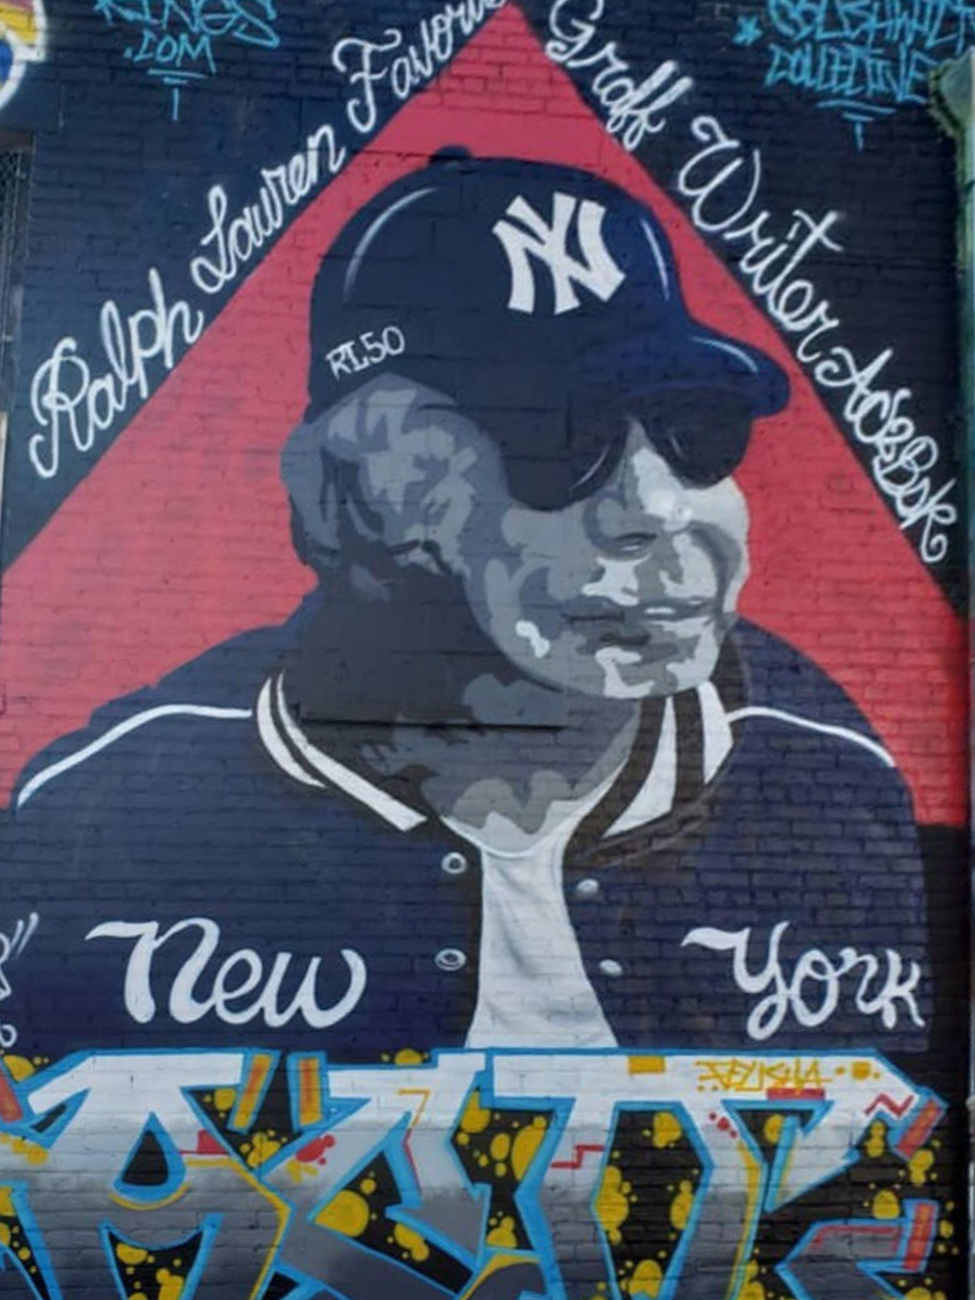 AC2BSK's latest creation: a 20-foot-tall image of Ralph Lauren in a Ralph Lauren Yankees™ hat and jacket